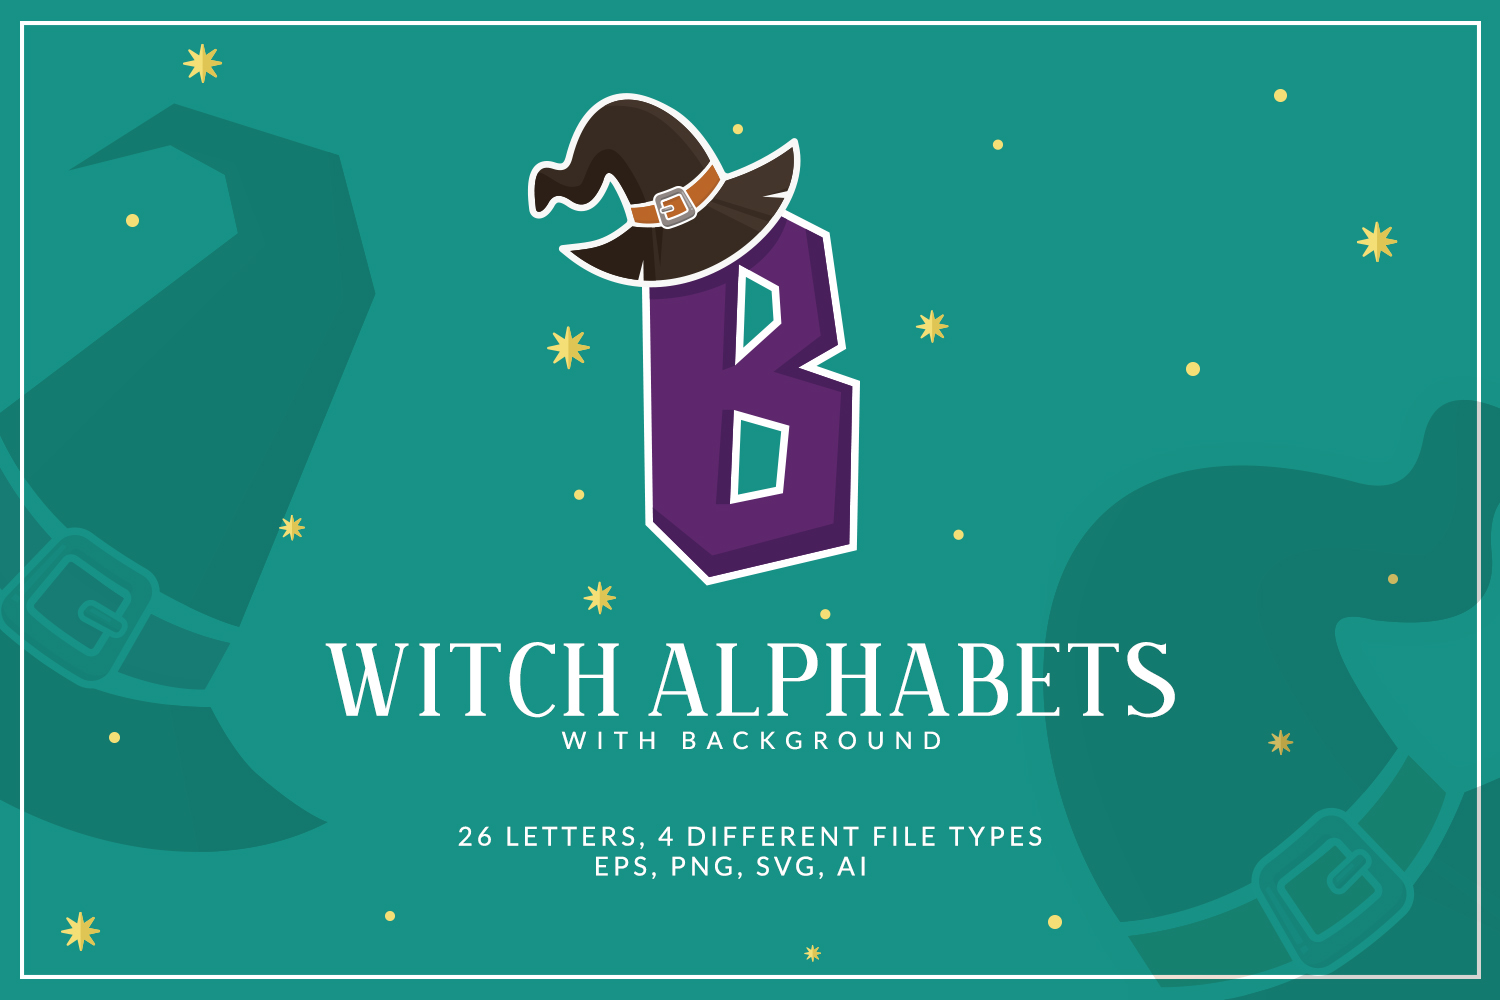 Witch Alphabets with Background example image 1